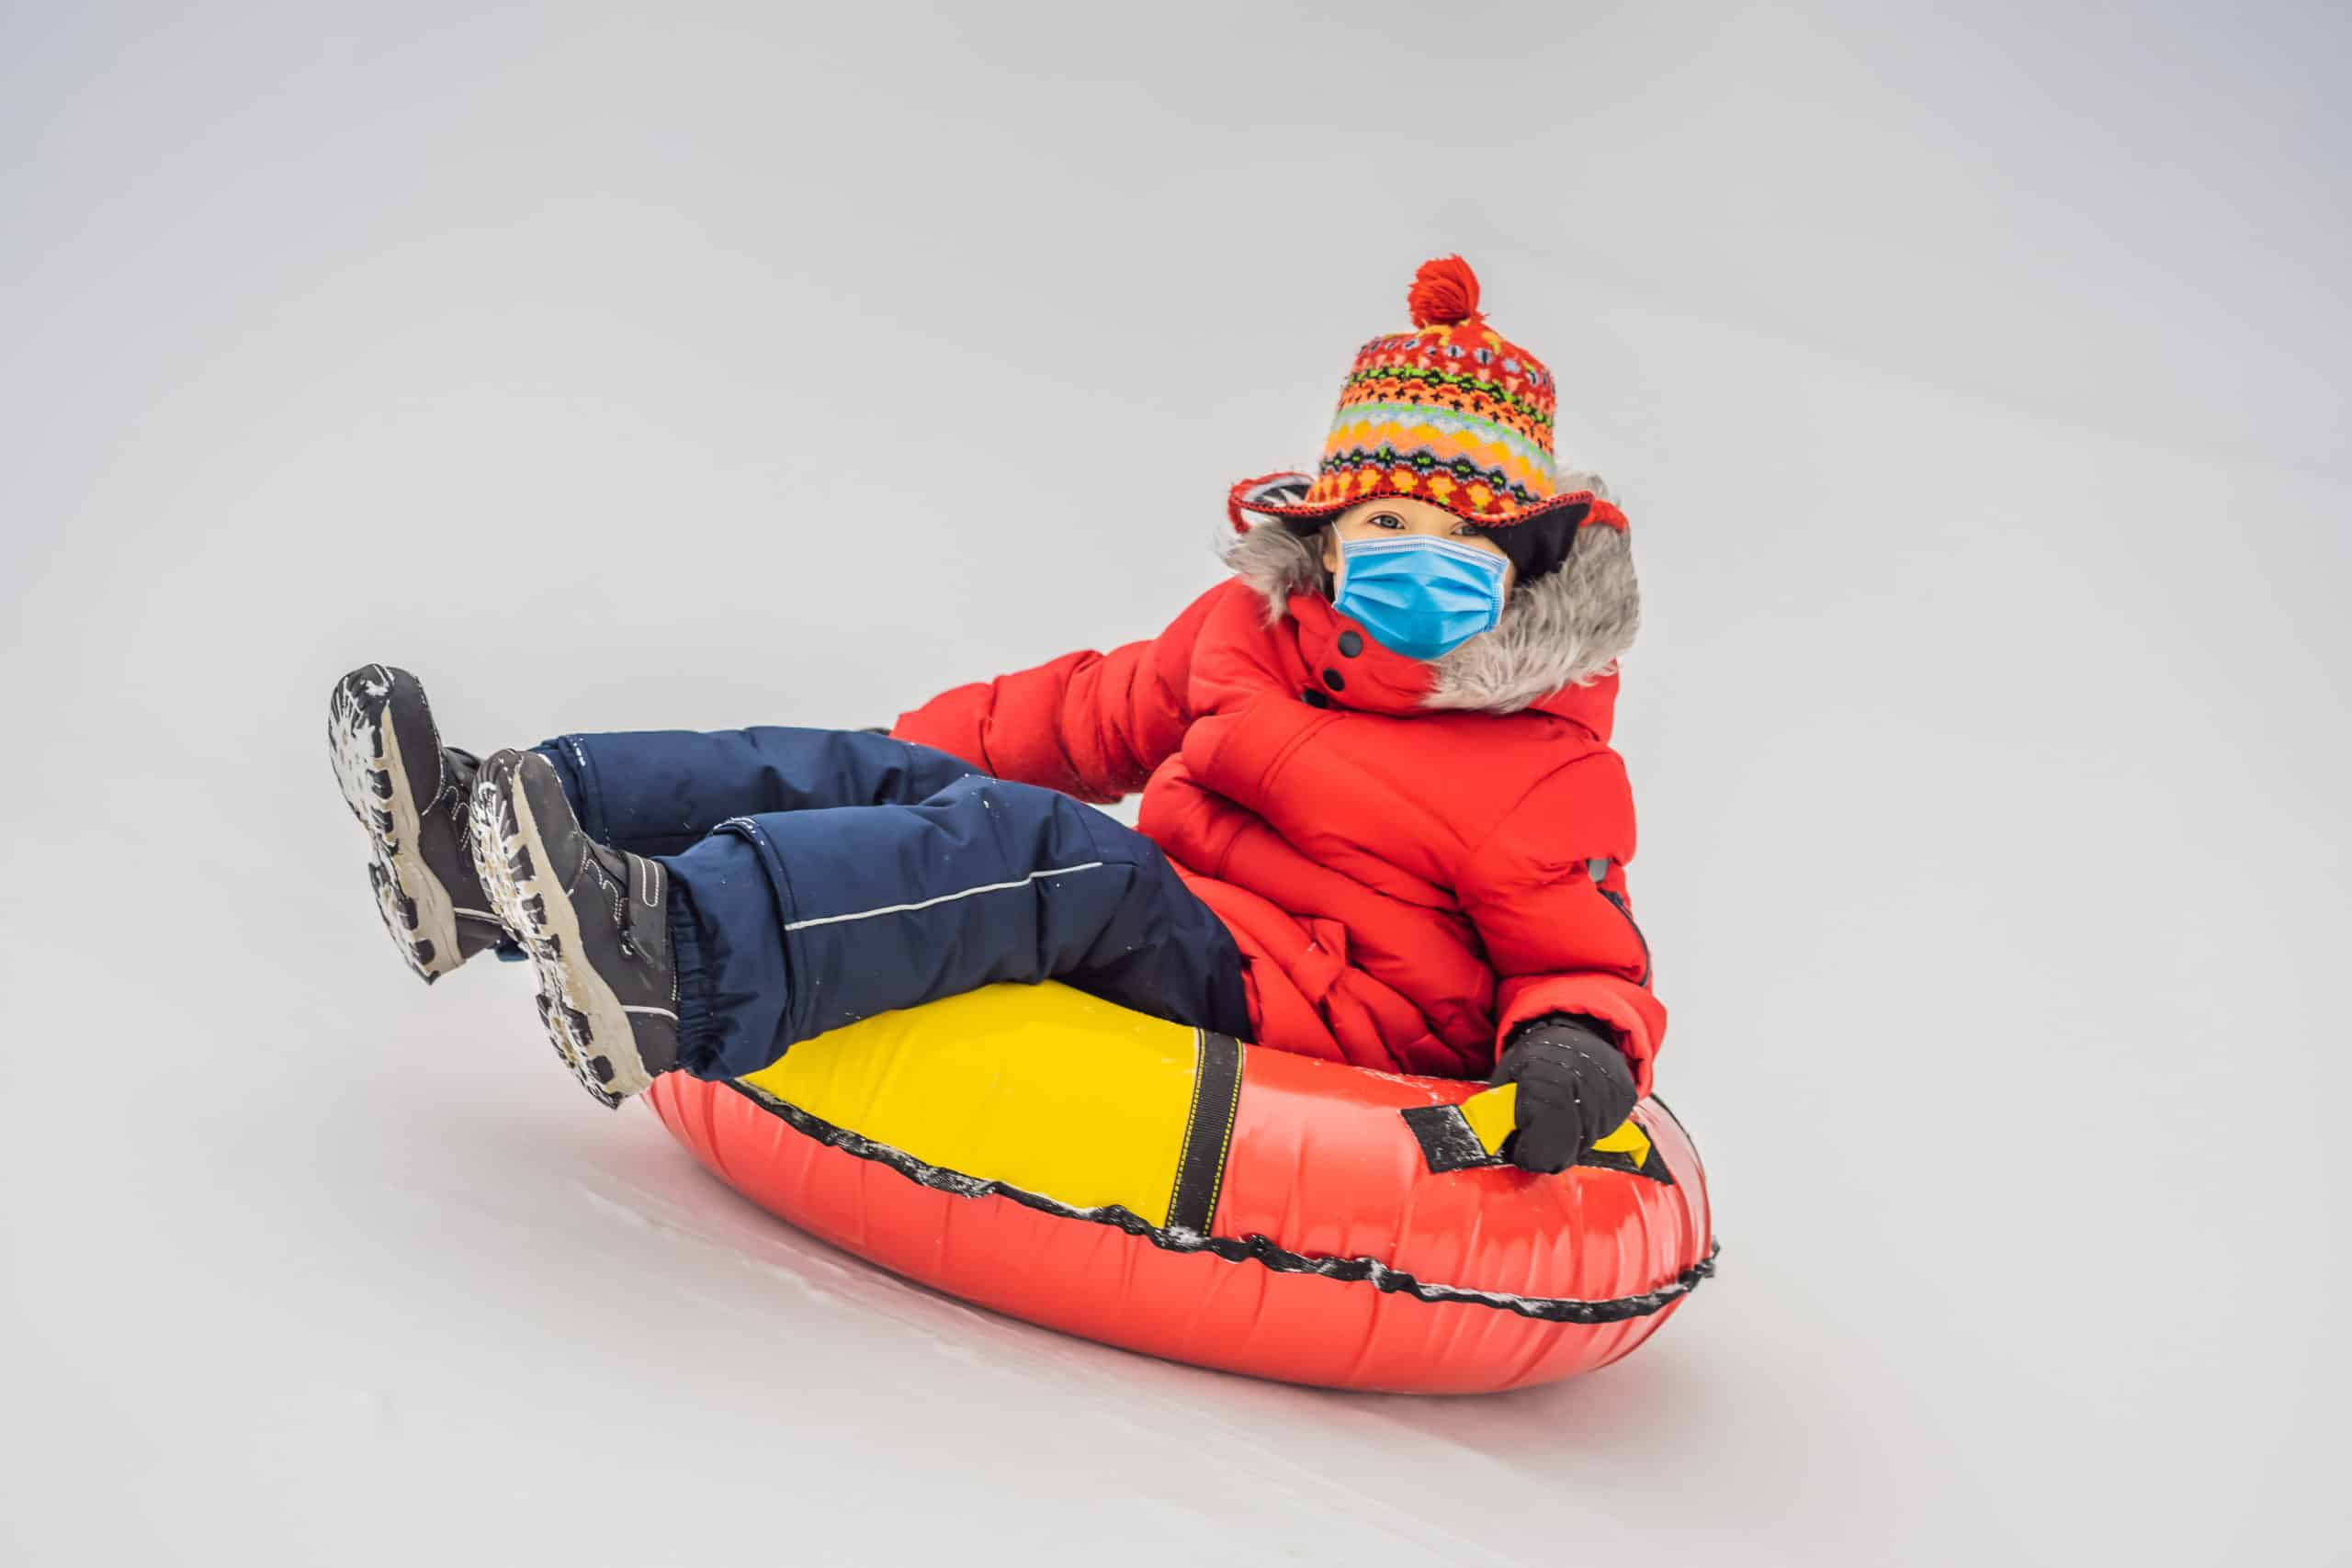 girl tubing on snow wearing a mask